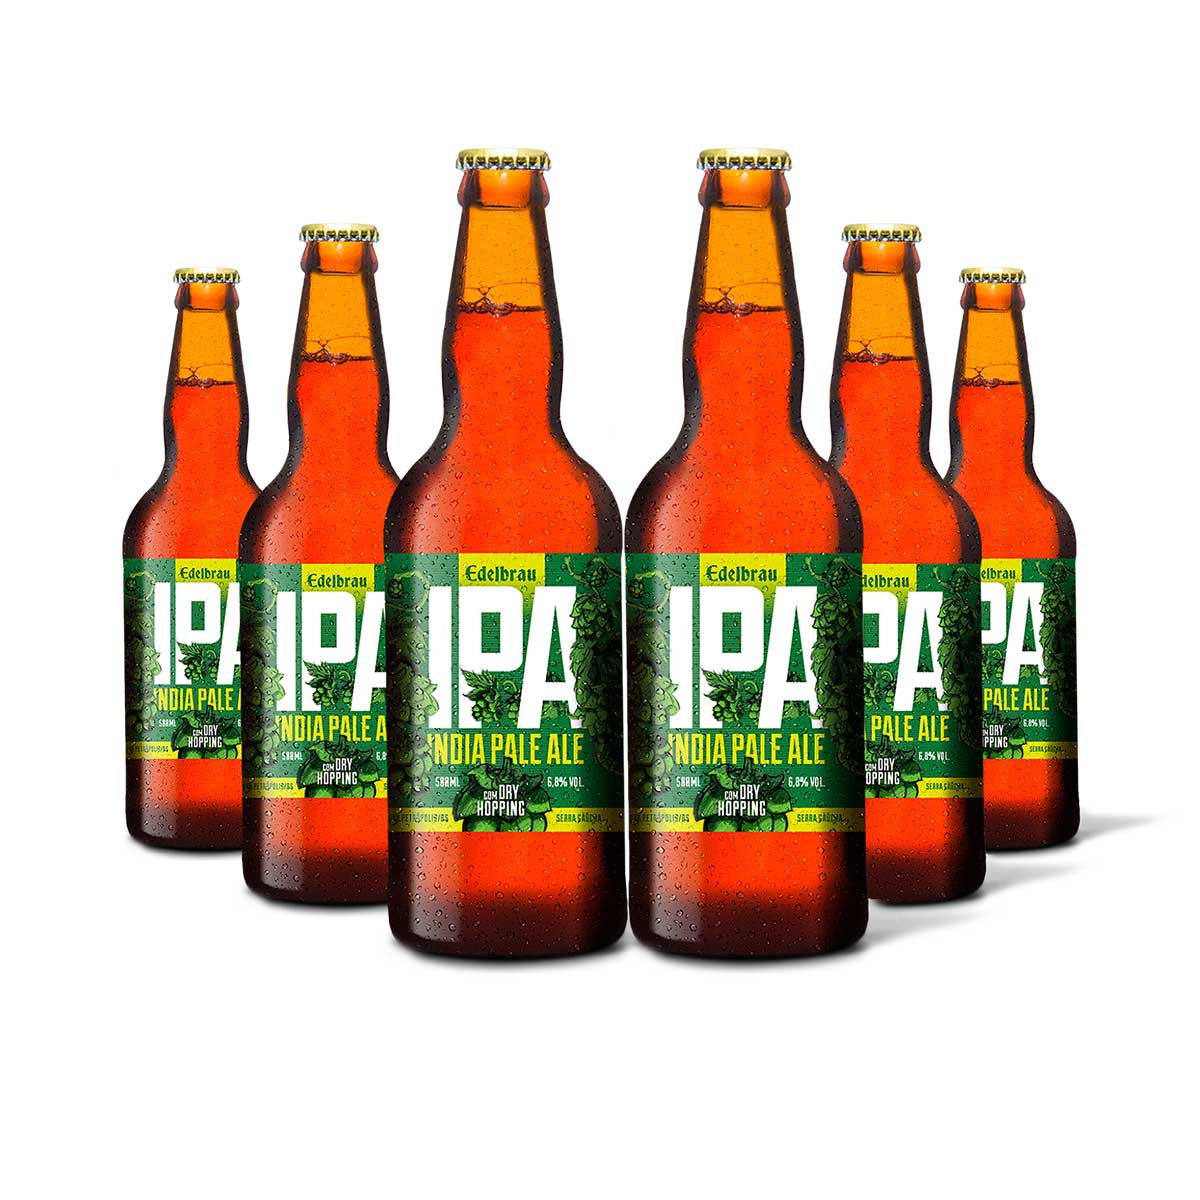 Pack Edelbrau India Pale Ale IPA 6 cervejas 500ml